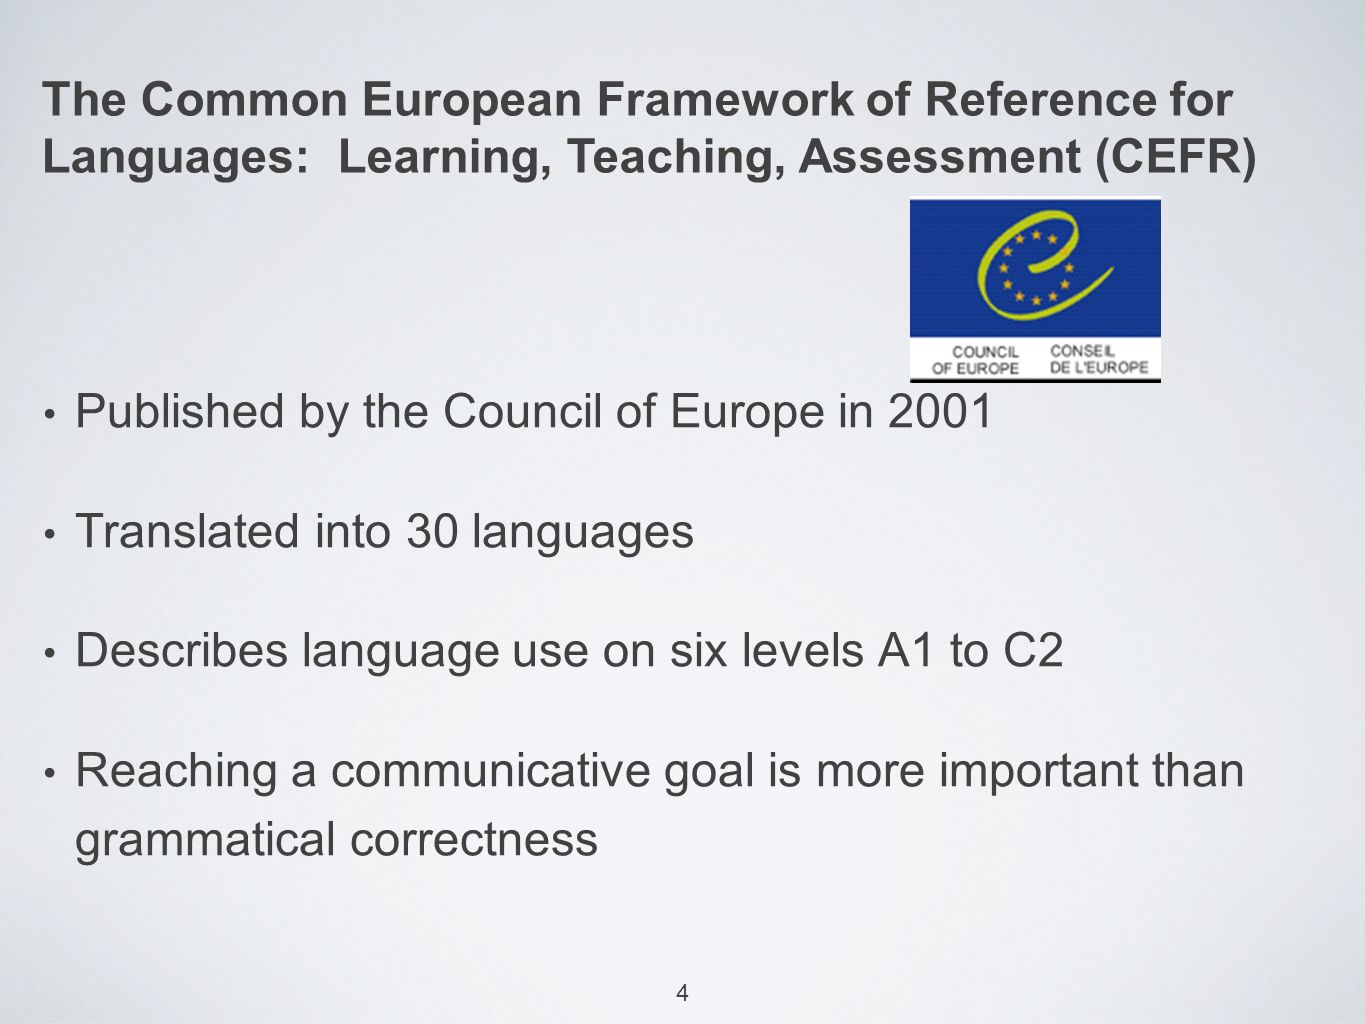 4 The Common European Framework of Reference for Languages: Learning, Teaching, Assessment (CEFR) Published by the Council of Europe in 2001 Translated into 30 languages Describes language use on six levels A1 to C2 Reaching a communicative goal is more important than grammatical correctness